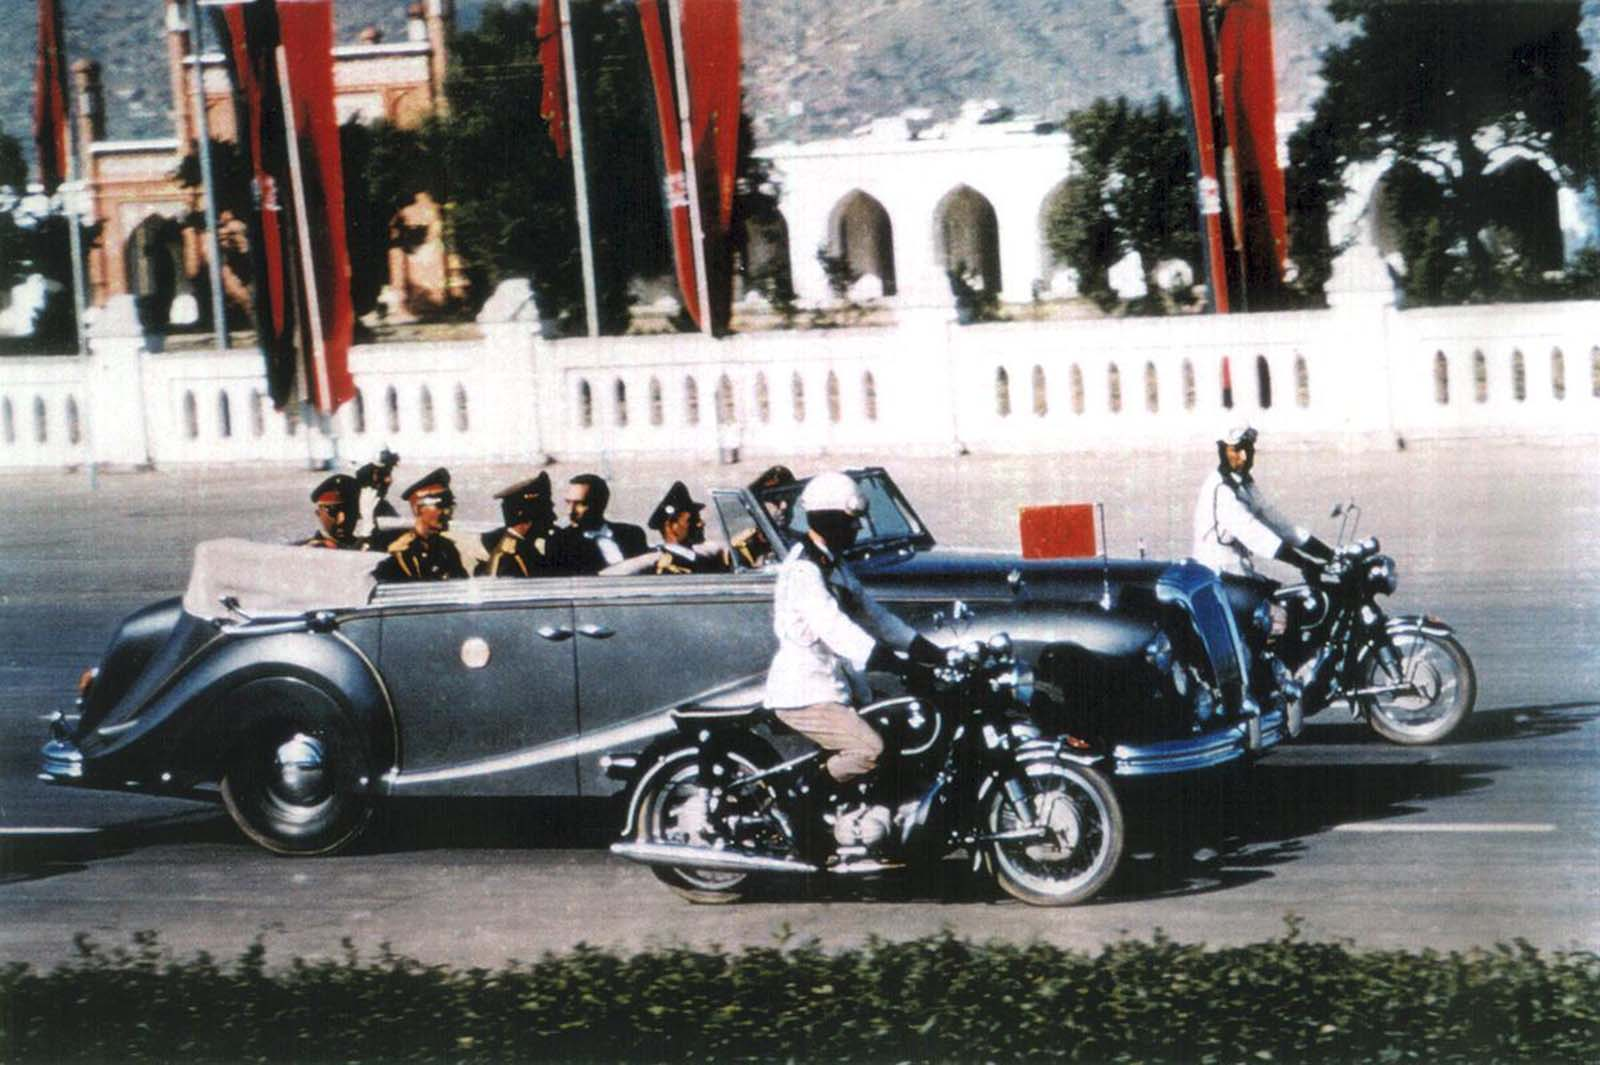 The King of Afghanistan, Mohammad Zahir Shah rides in his limousine on Kabul's central road Idga Wat in this 1968 photo. Zahir Shah, the last of King of Afghanistan lived in exile in Rome since a 1973 coup, returning to Afghanistan in 2002, after the removal of the Taliban. He passed away in Kabul in 2007, at the age of 92.